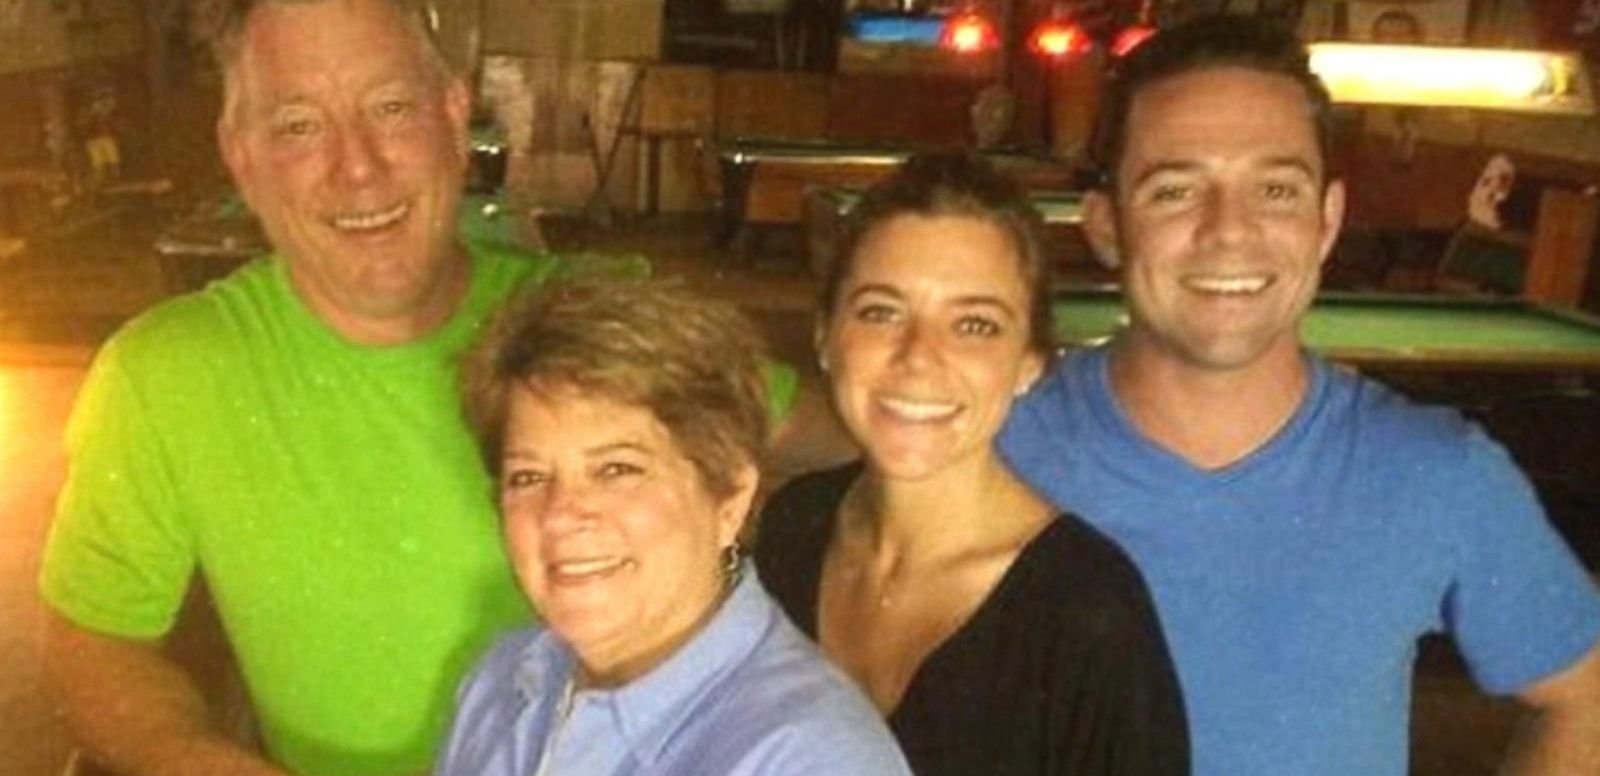 VIDEO: Kate Steinle's Family Files Suit Against San Francisco, Federal Officials